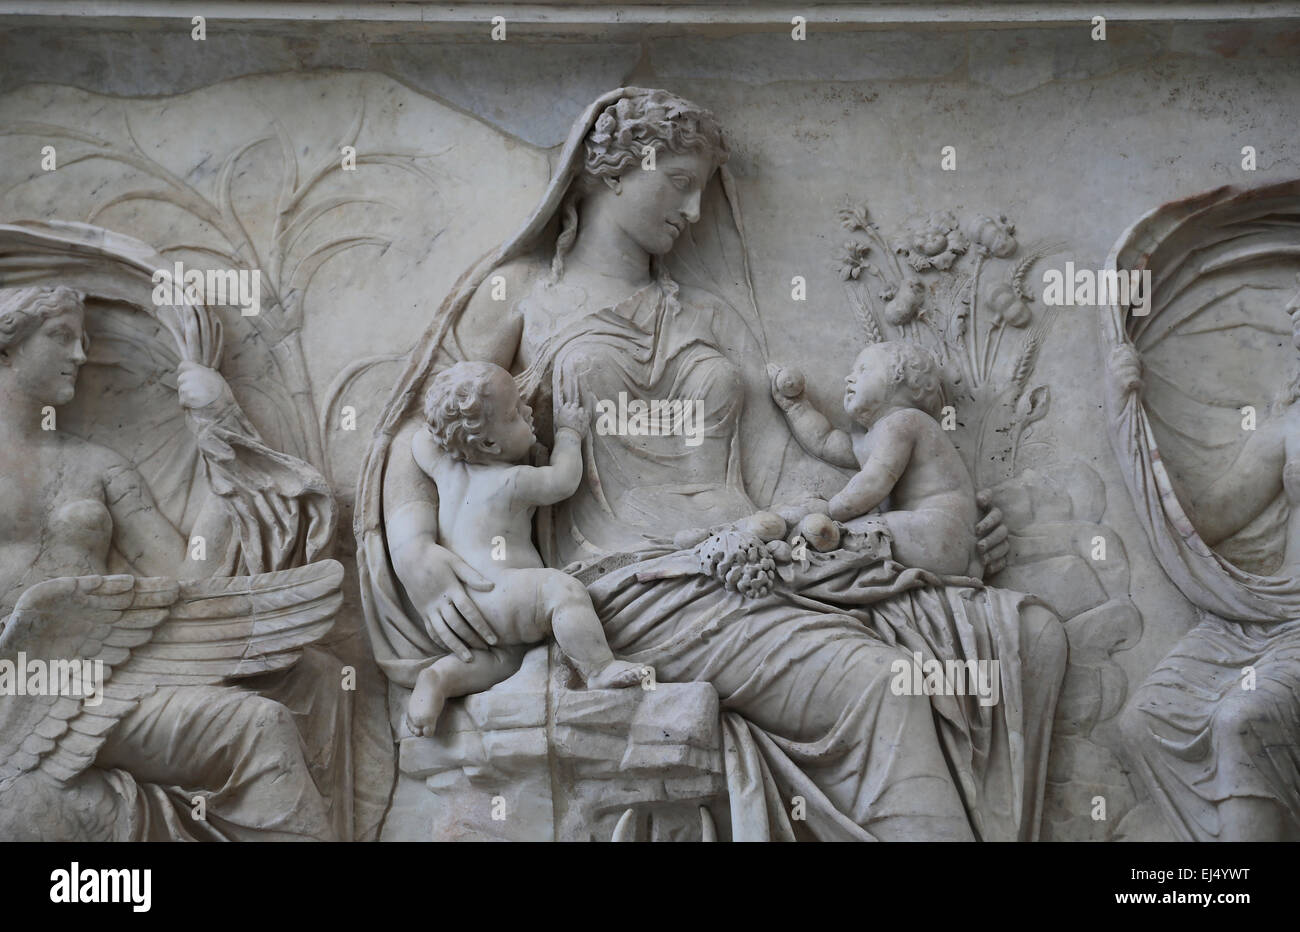 Italy. Rome. Ara Pacis Augustae. A goddess Tellus (Earth) sits amid a scene of fertility and prosperity with twins. - Stock Image